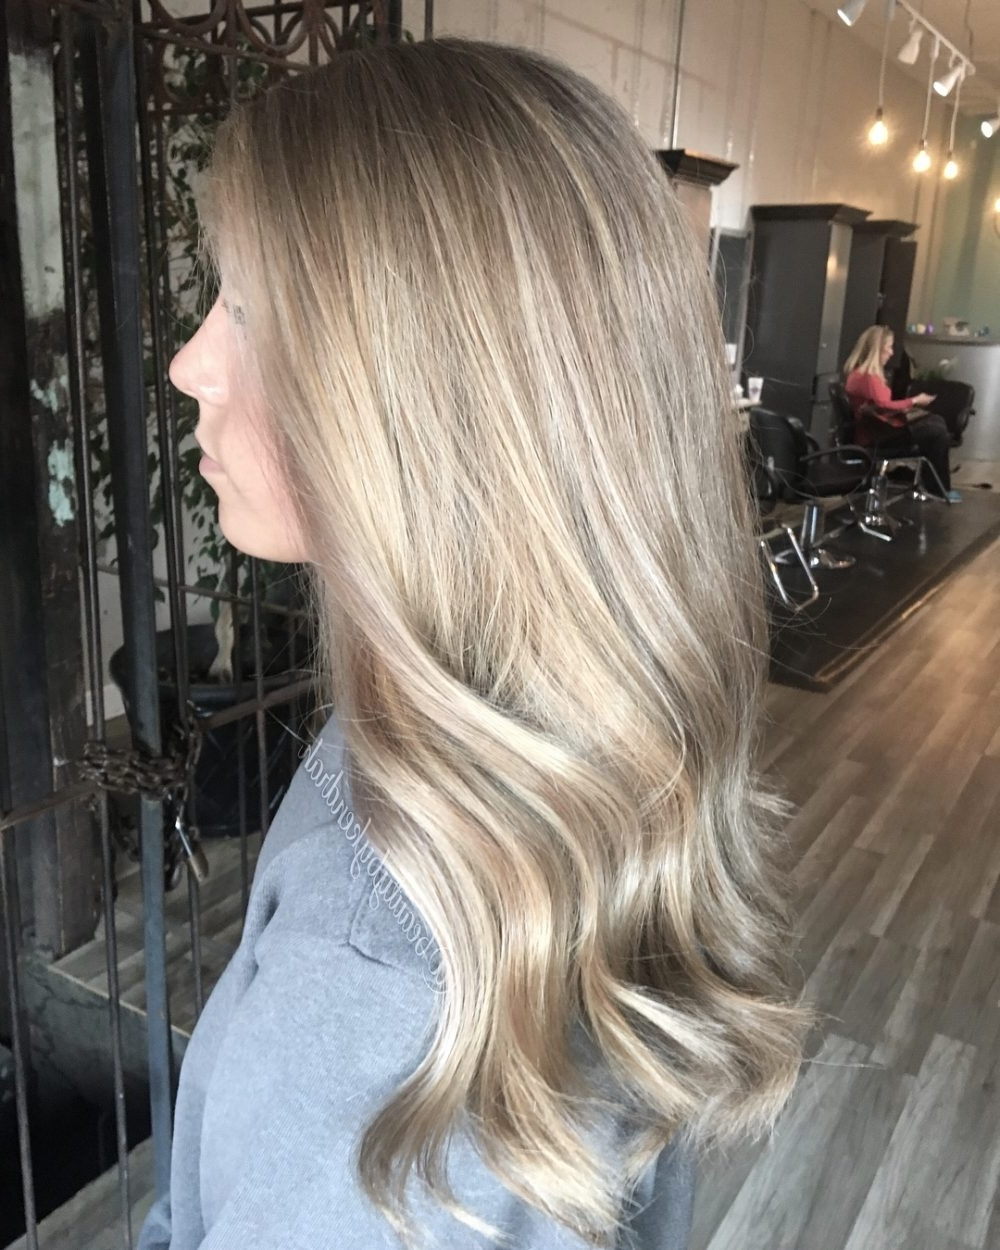 30 Top Long Blonde Hair Ideas – Bombshell Alert! For Preferred Creamy Blonde Fade Hairstyles (View 6 of 20)